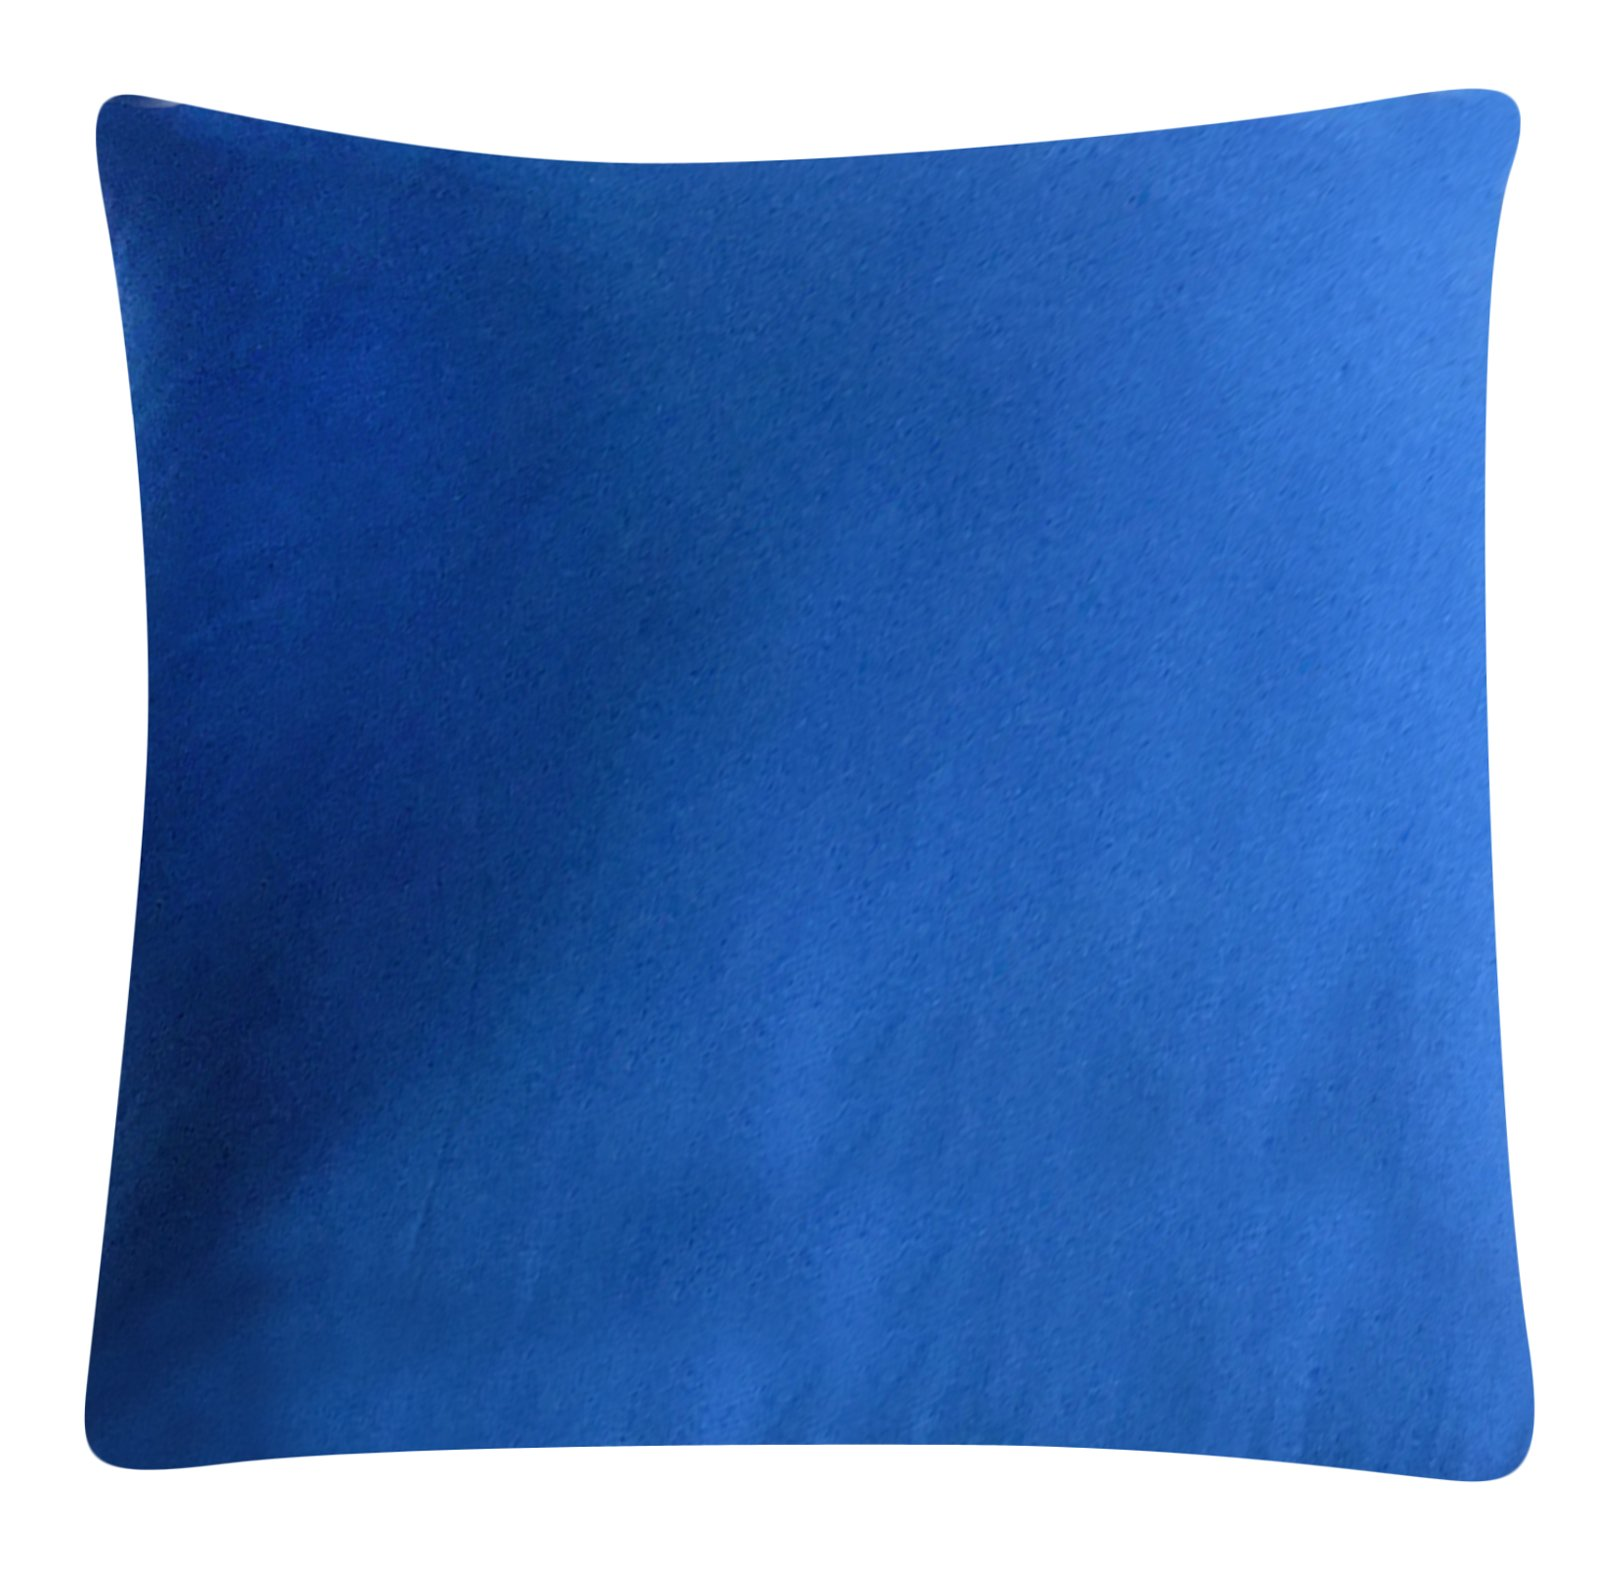 Lushomes Blue Poly Pillow Insert Square Cushion Filler 16'' x 16'' - Packs Available by LUSHOMES